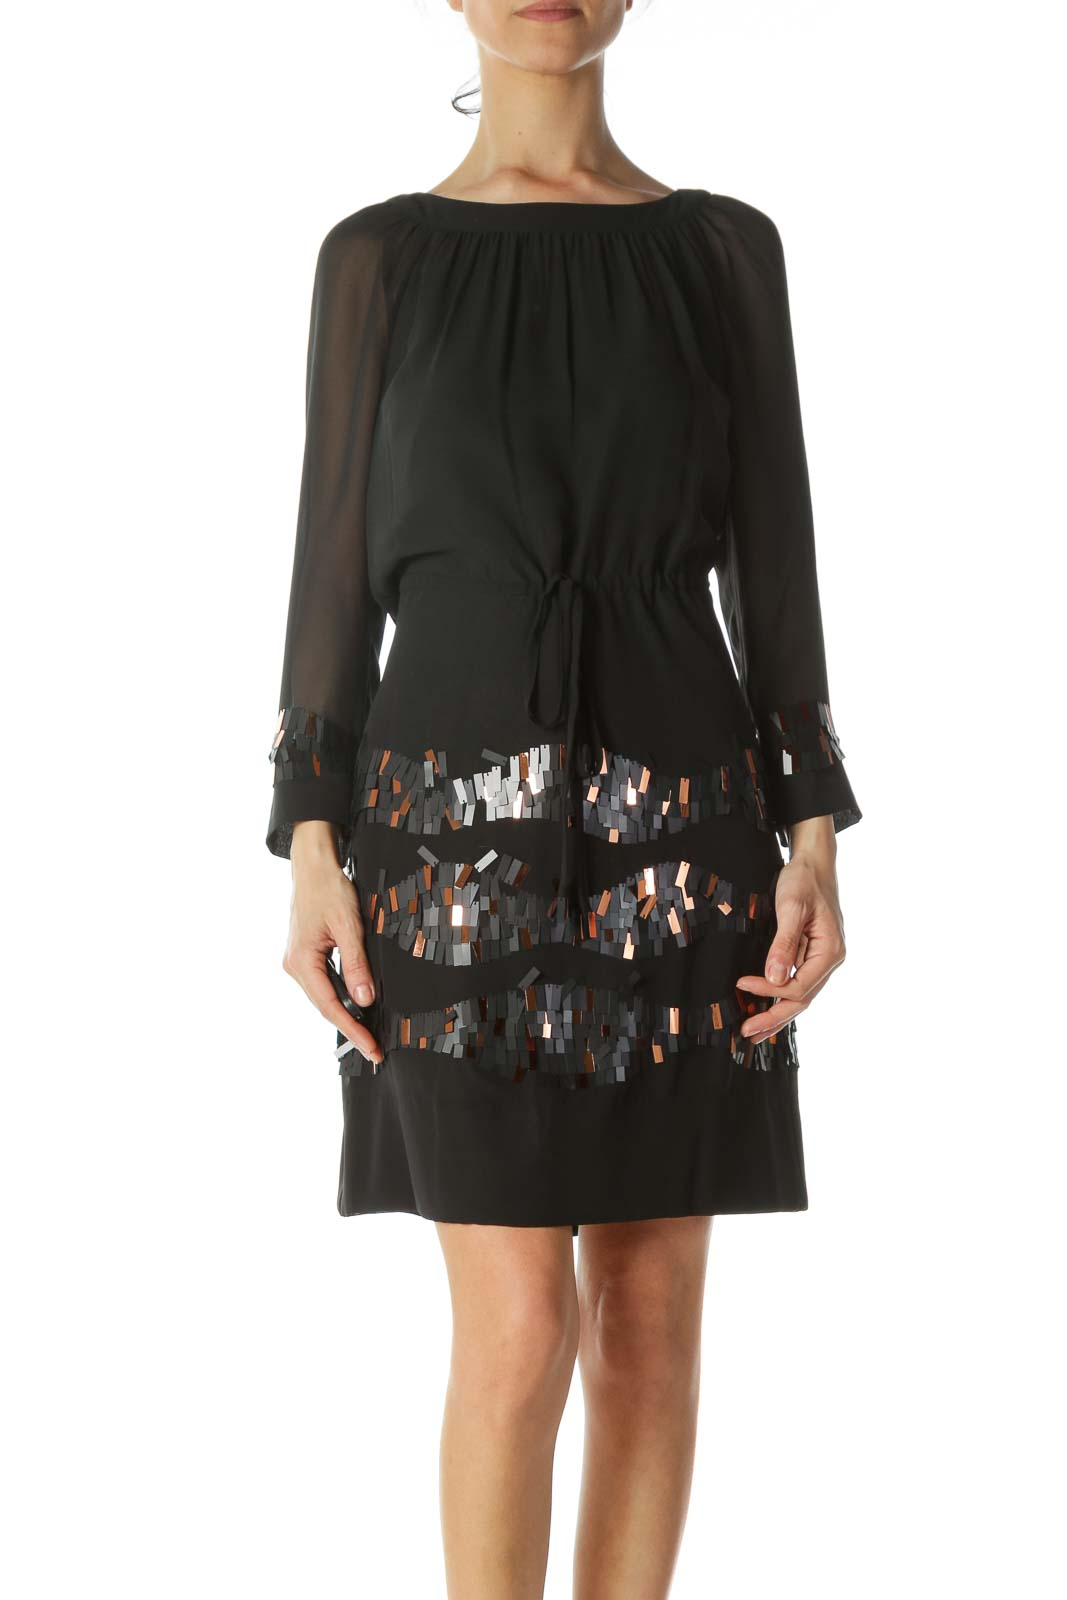 Black Sequined-Accents Drawstring-Waist Dress Front